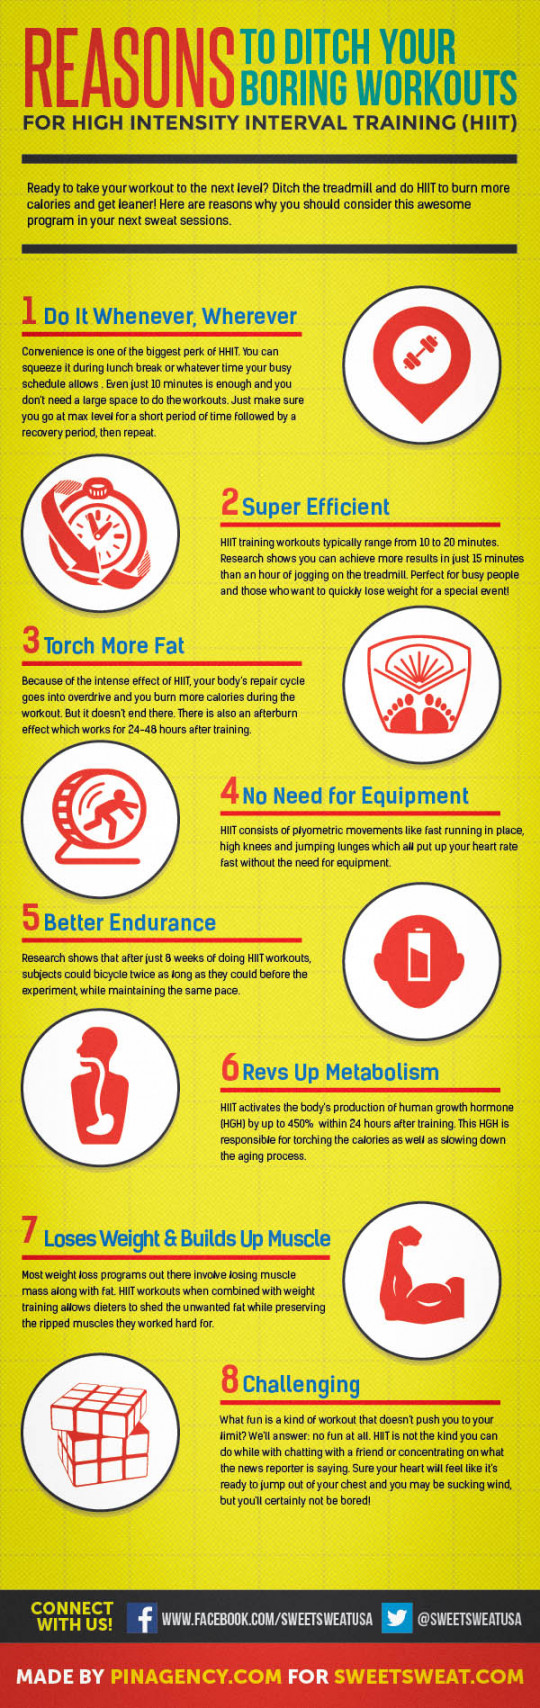 Reasons to Ditch Your Boring Workouts